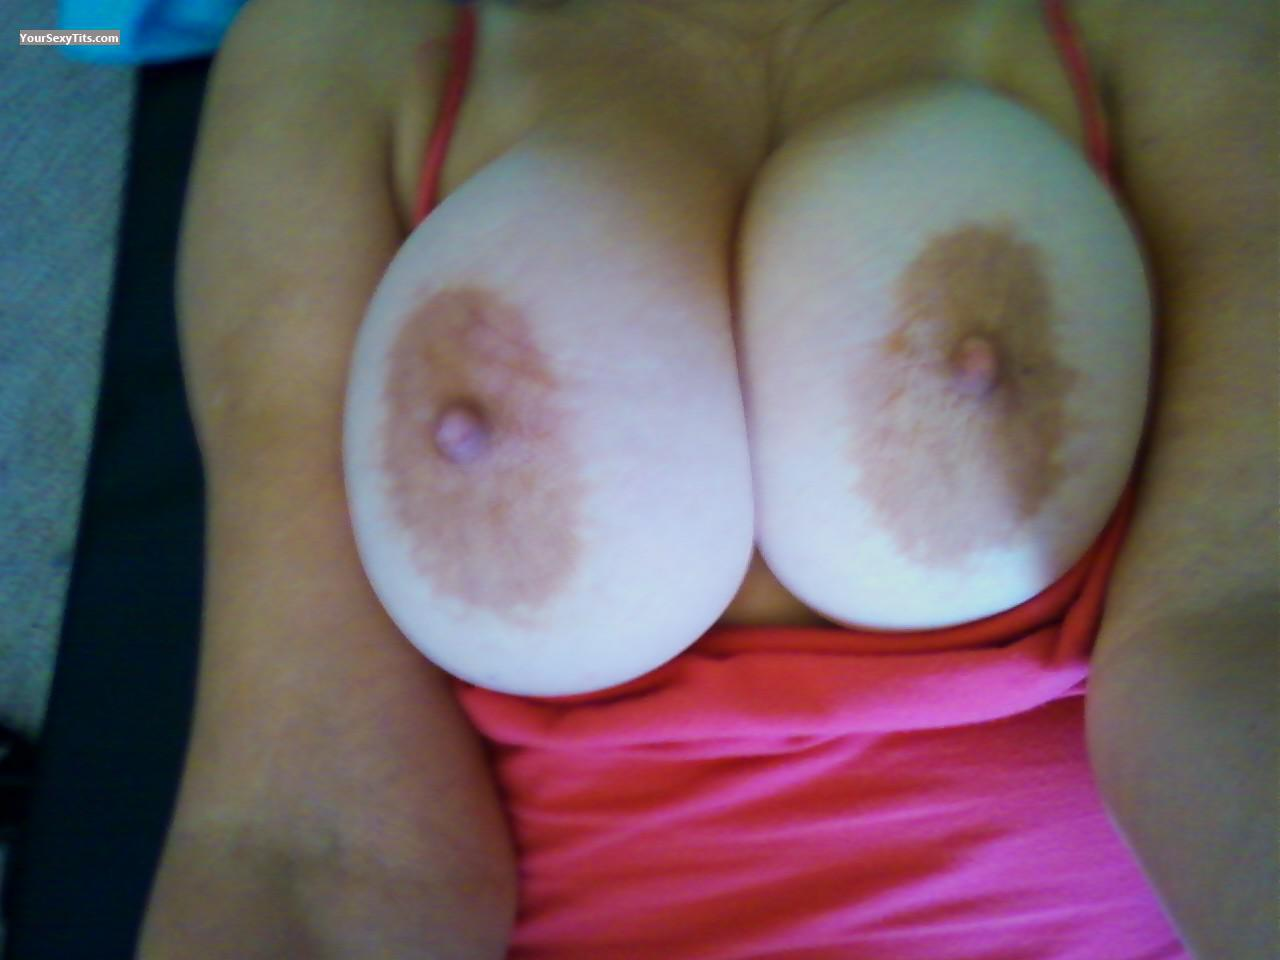 My Very big Tits Selfie by Bad Girl